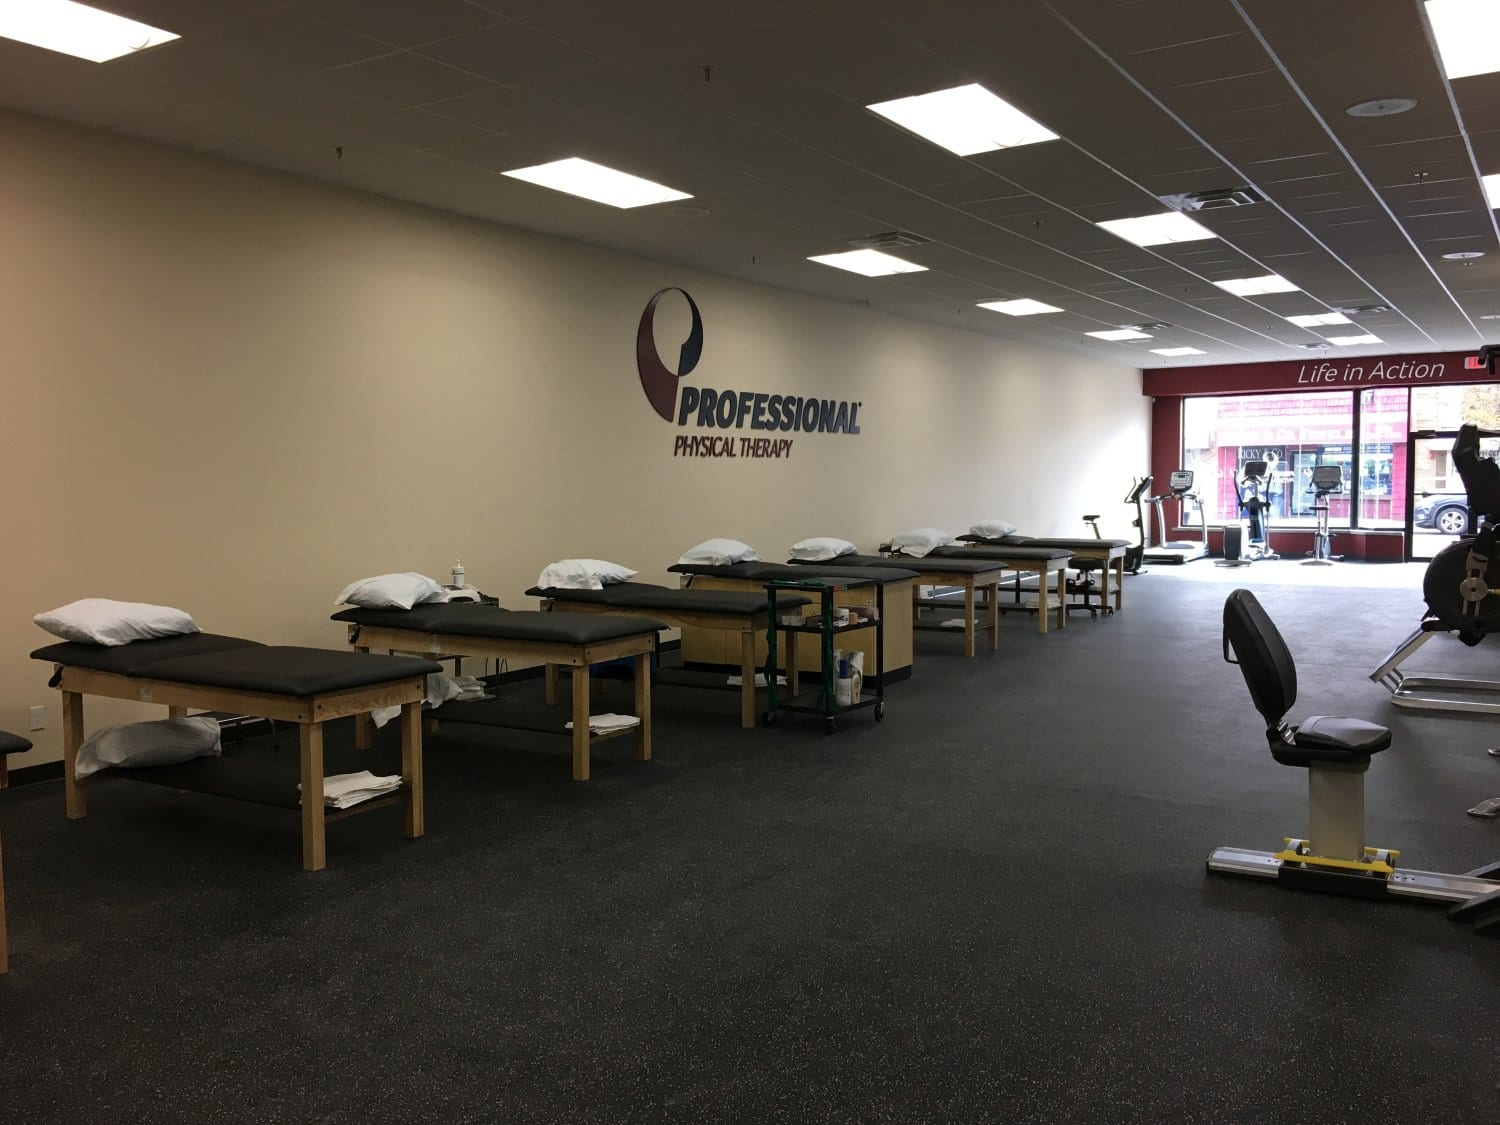 Here is a photo of the beds used for physical therapy at our cliic in Sayville, New York.